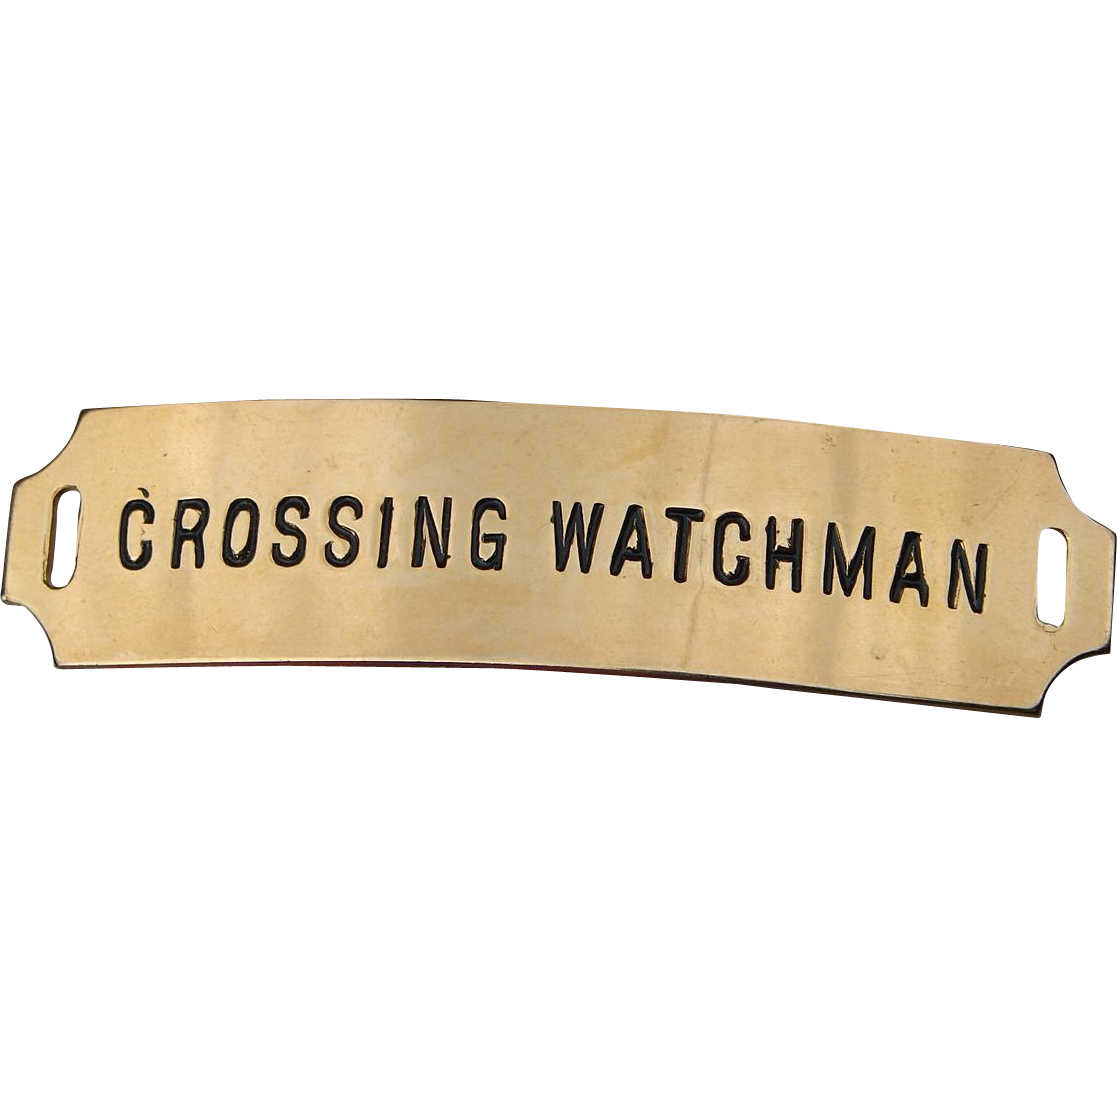 Vintage Authentic Crossing Watchman Railroad Cap Hat Badge by American Railway Supply